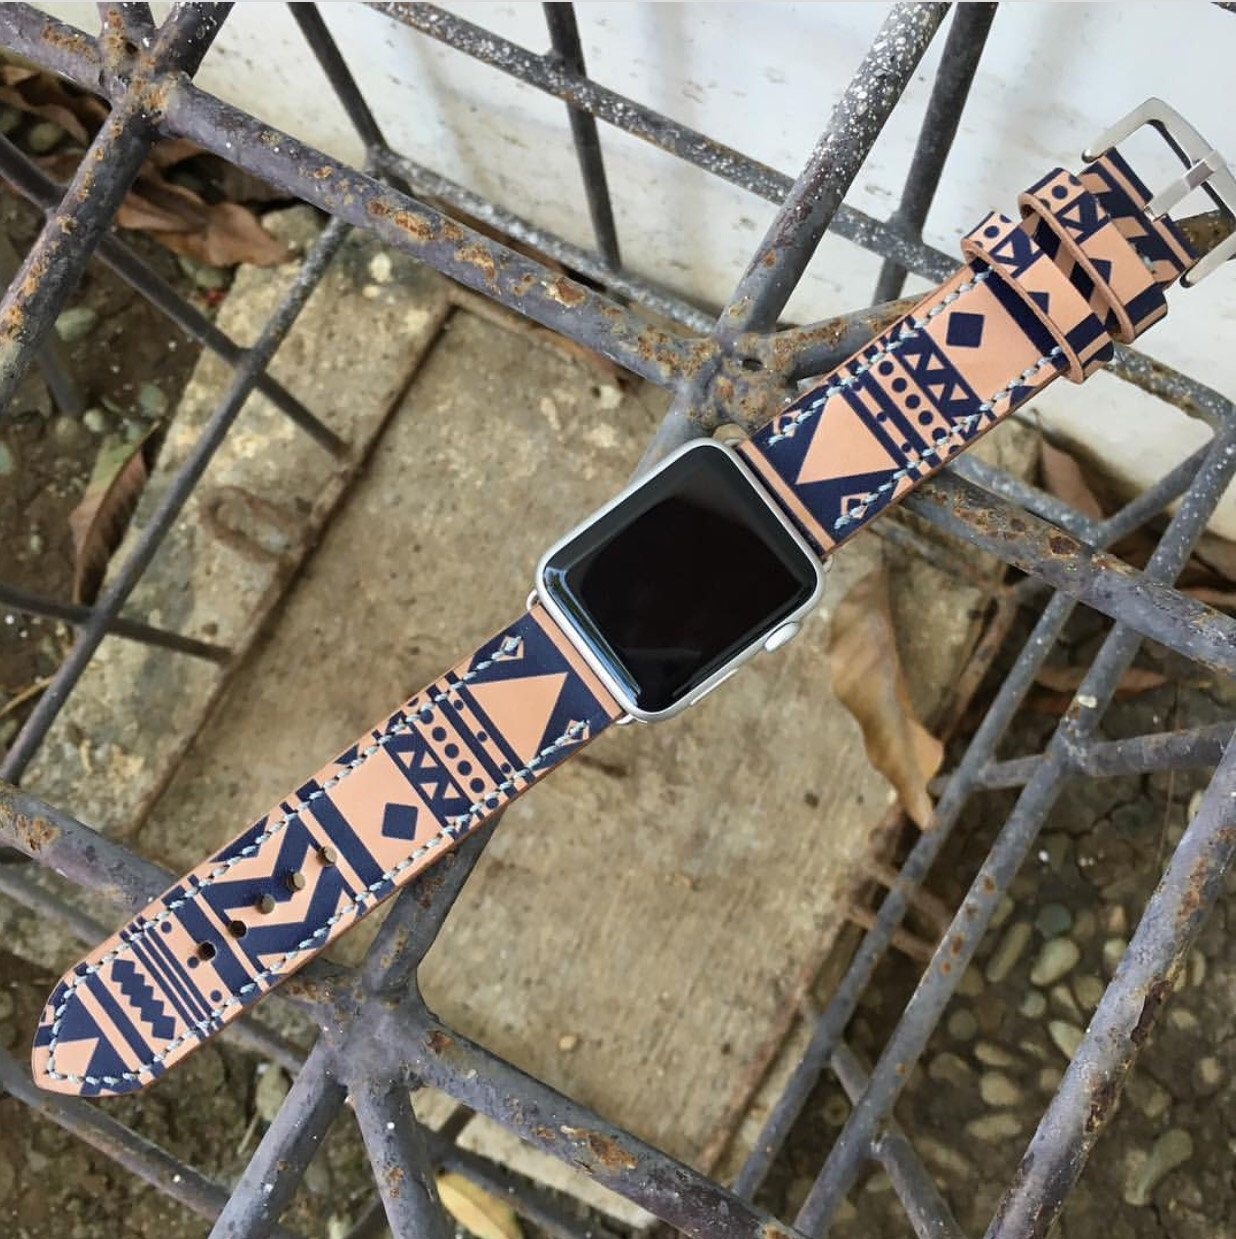 Apple Watch Straps Hand-Stitched Apple Watch Leather Band, Single Tour Watch Band, 42mm or 38mm Apple Watch Leather Band, Apple Watch Strap by RuslieStraps on Etsy https://www.etsy.com/listing/481321763/apple-watch-straps-hand-stitched-apple